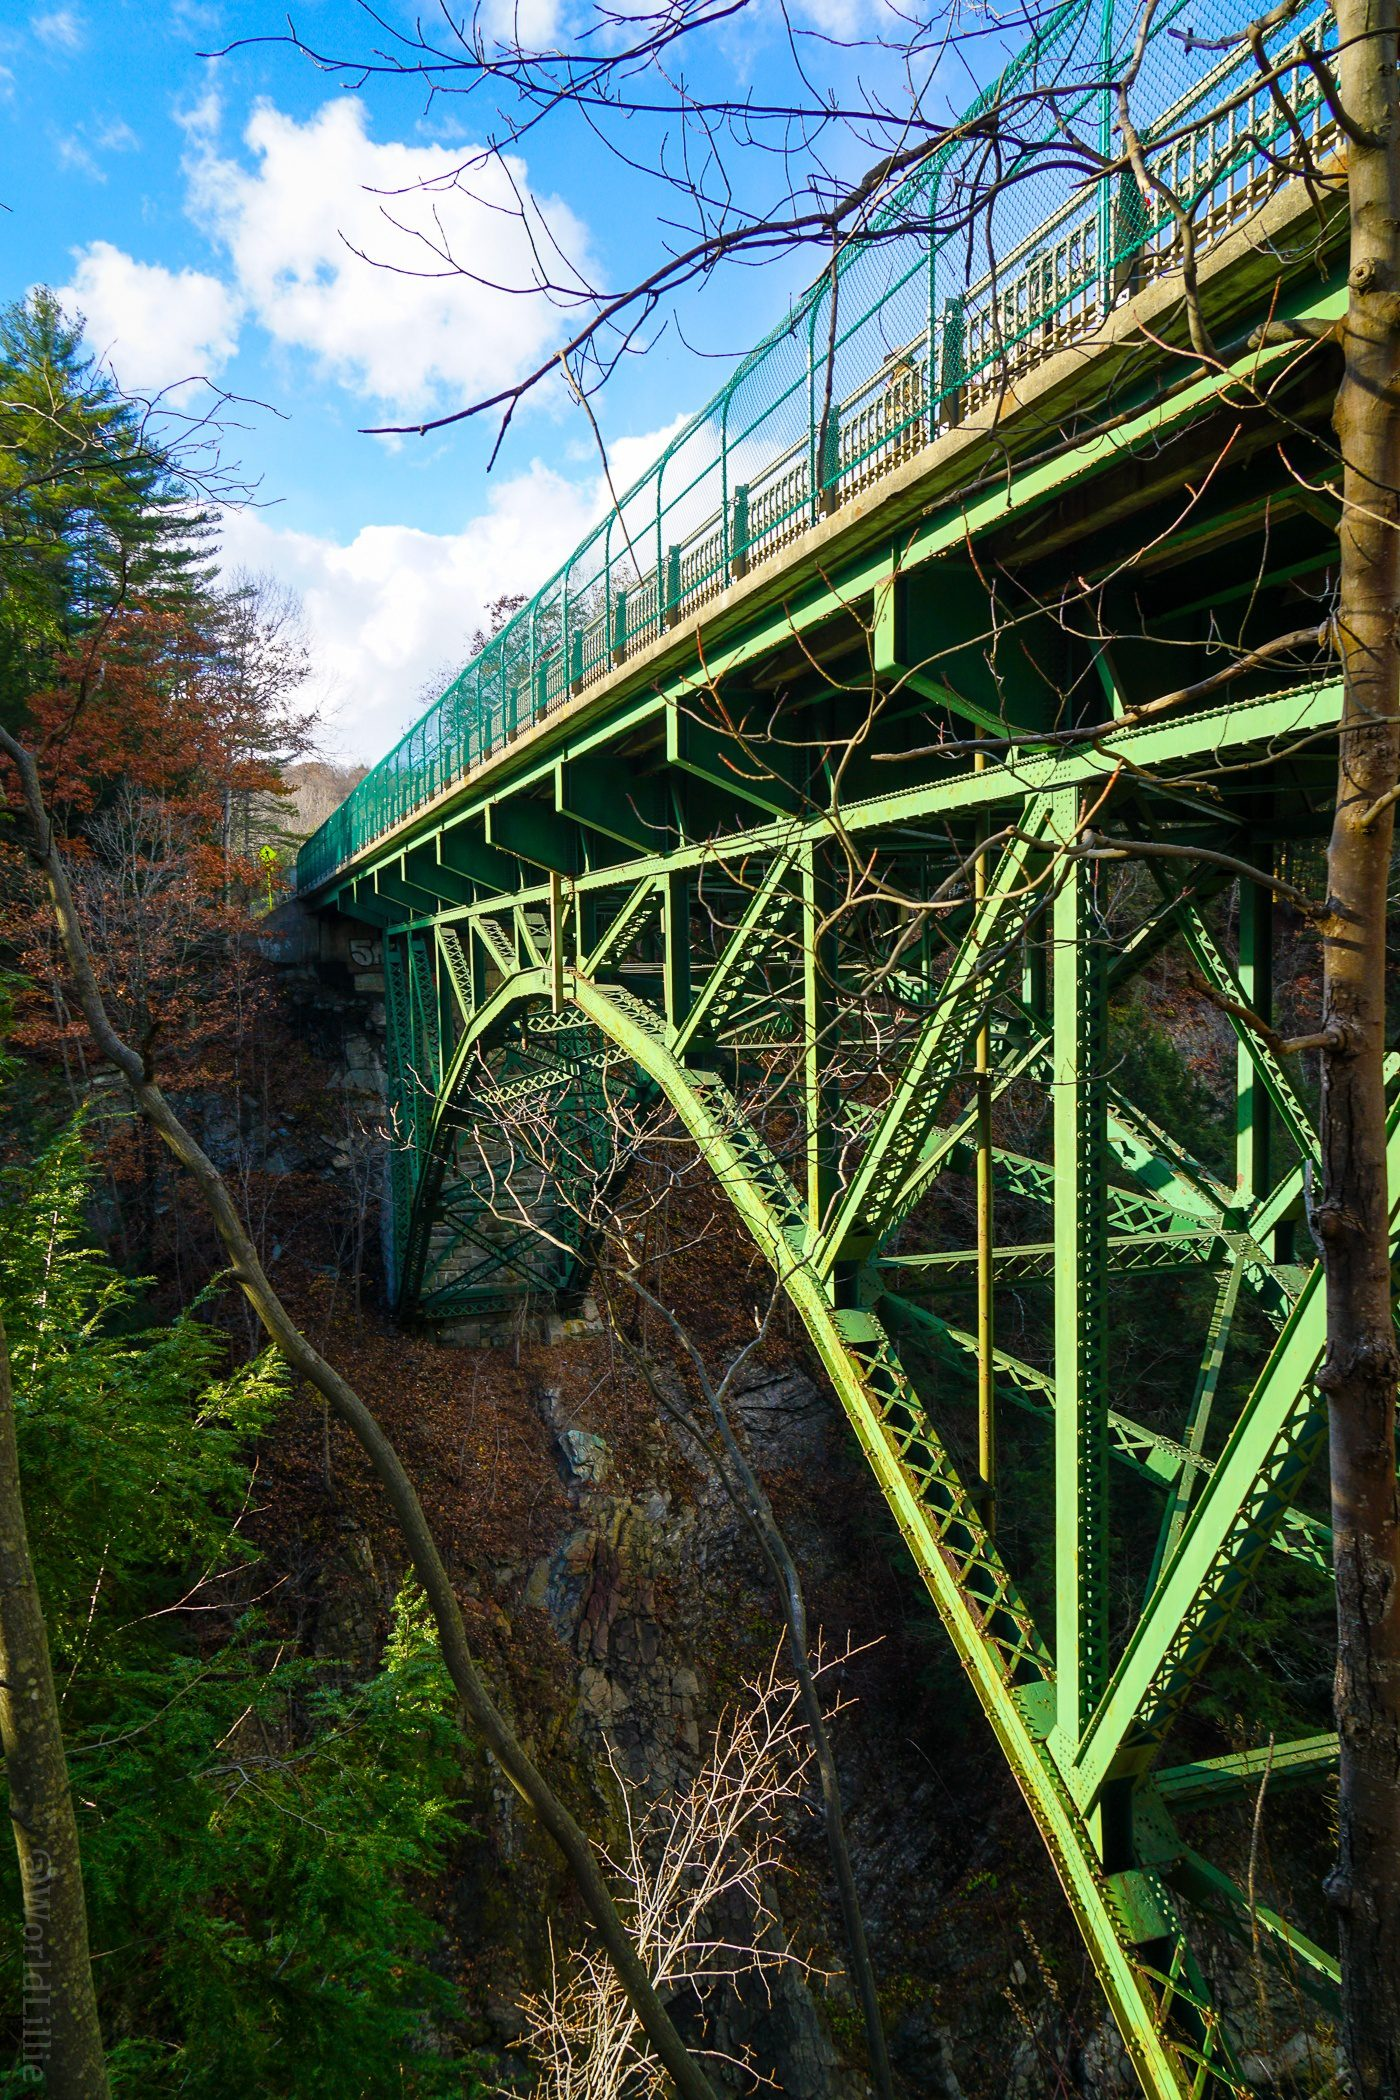 Quechee Gorge Bridge is historic! For a romantic New England getaway, or family travel fun, Woodstock, VT is a charming small town: Covered bridges, Billings Farm, Vermont skiing, and falconry!